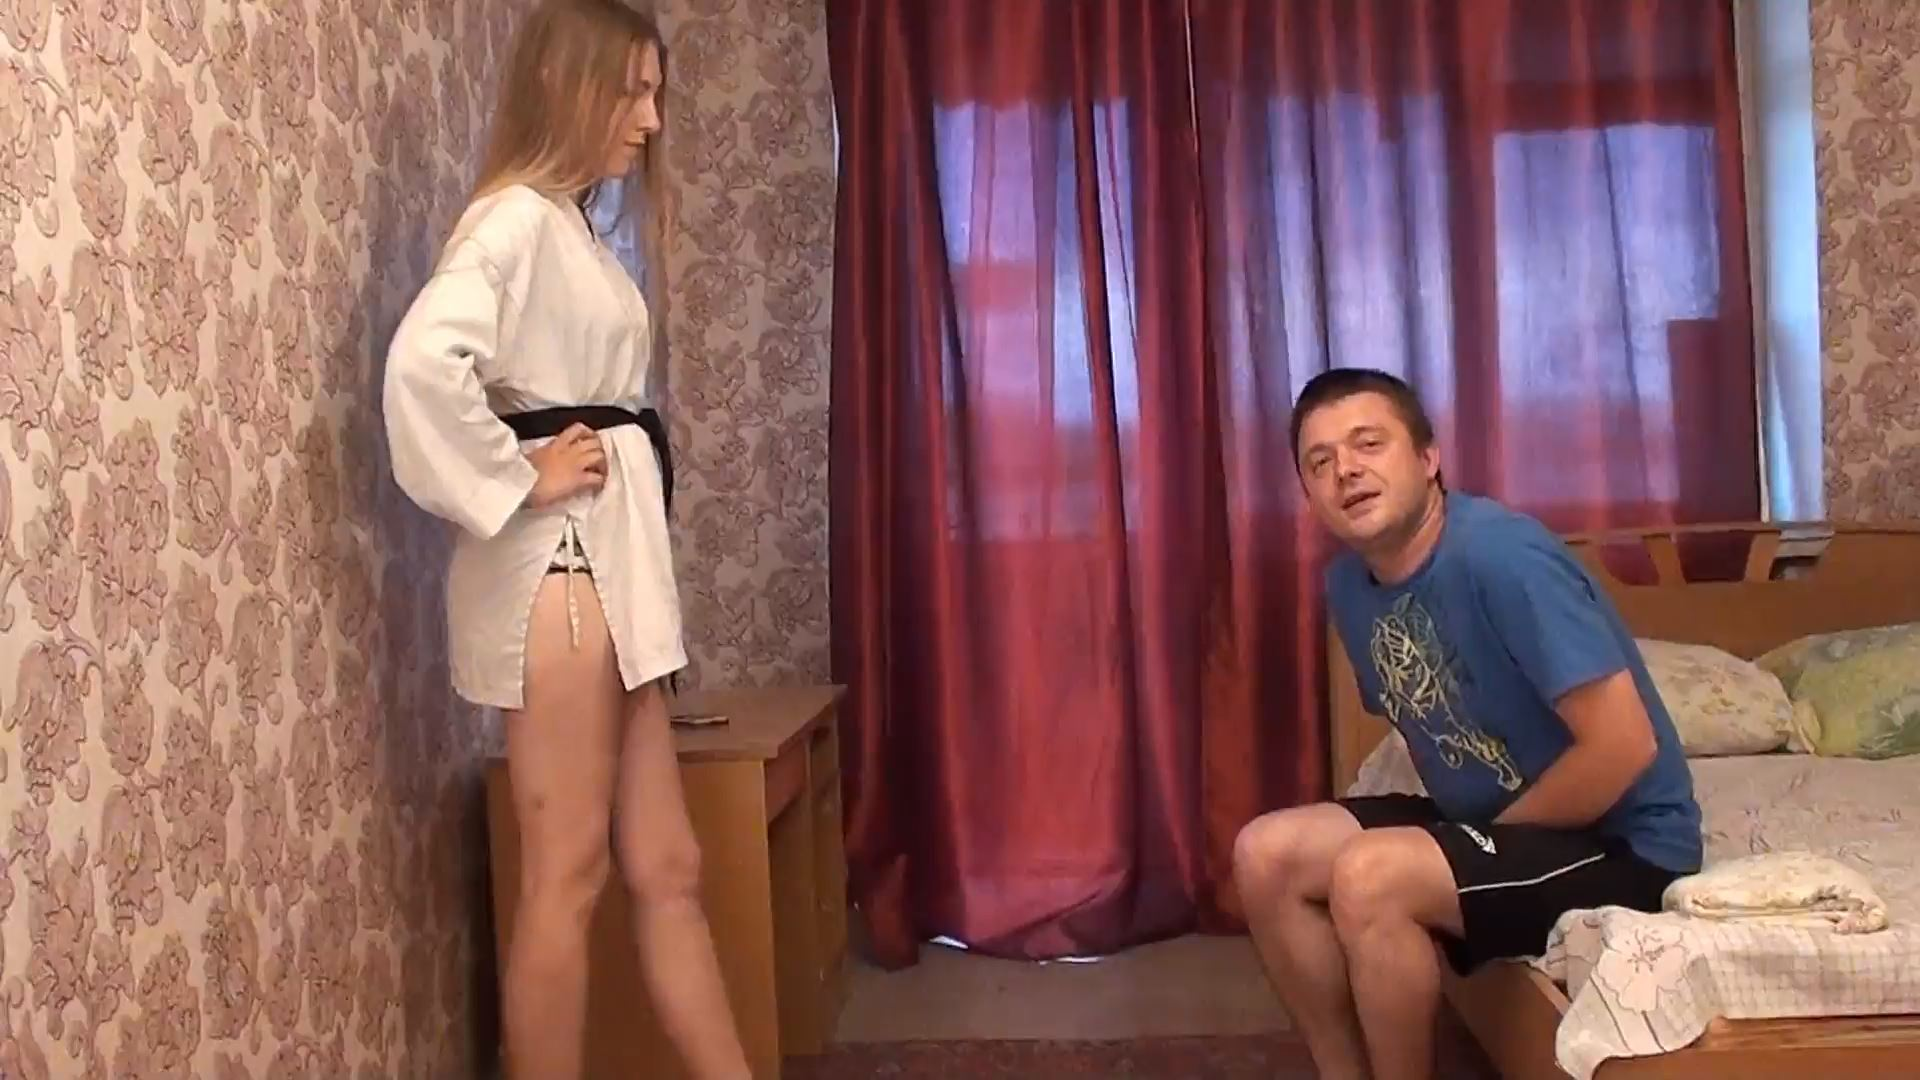 Ballbuster LanaX In Scene: KARATE FOR GIRLS - RUSSIAN BALLBUSTING / BALLBUSTING ROKSANA - FULL HD/1080p/MP4